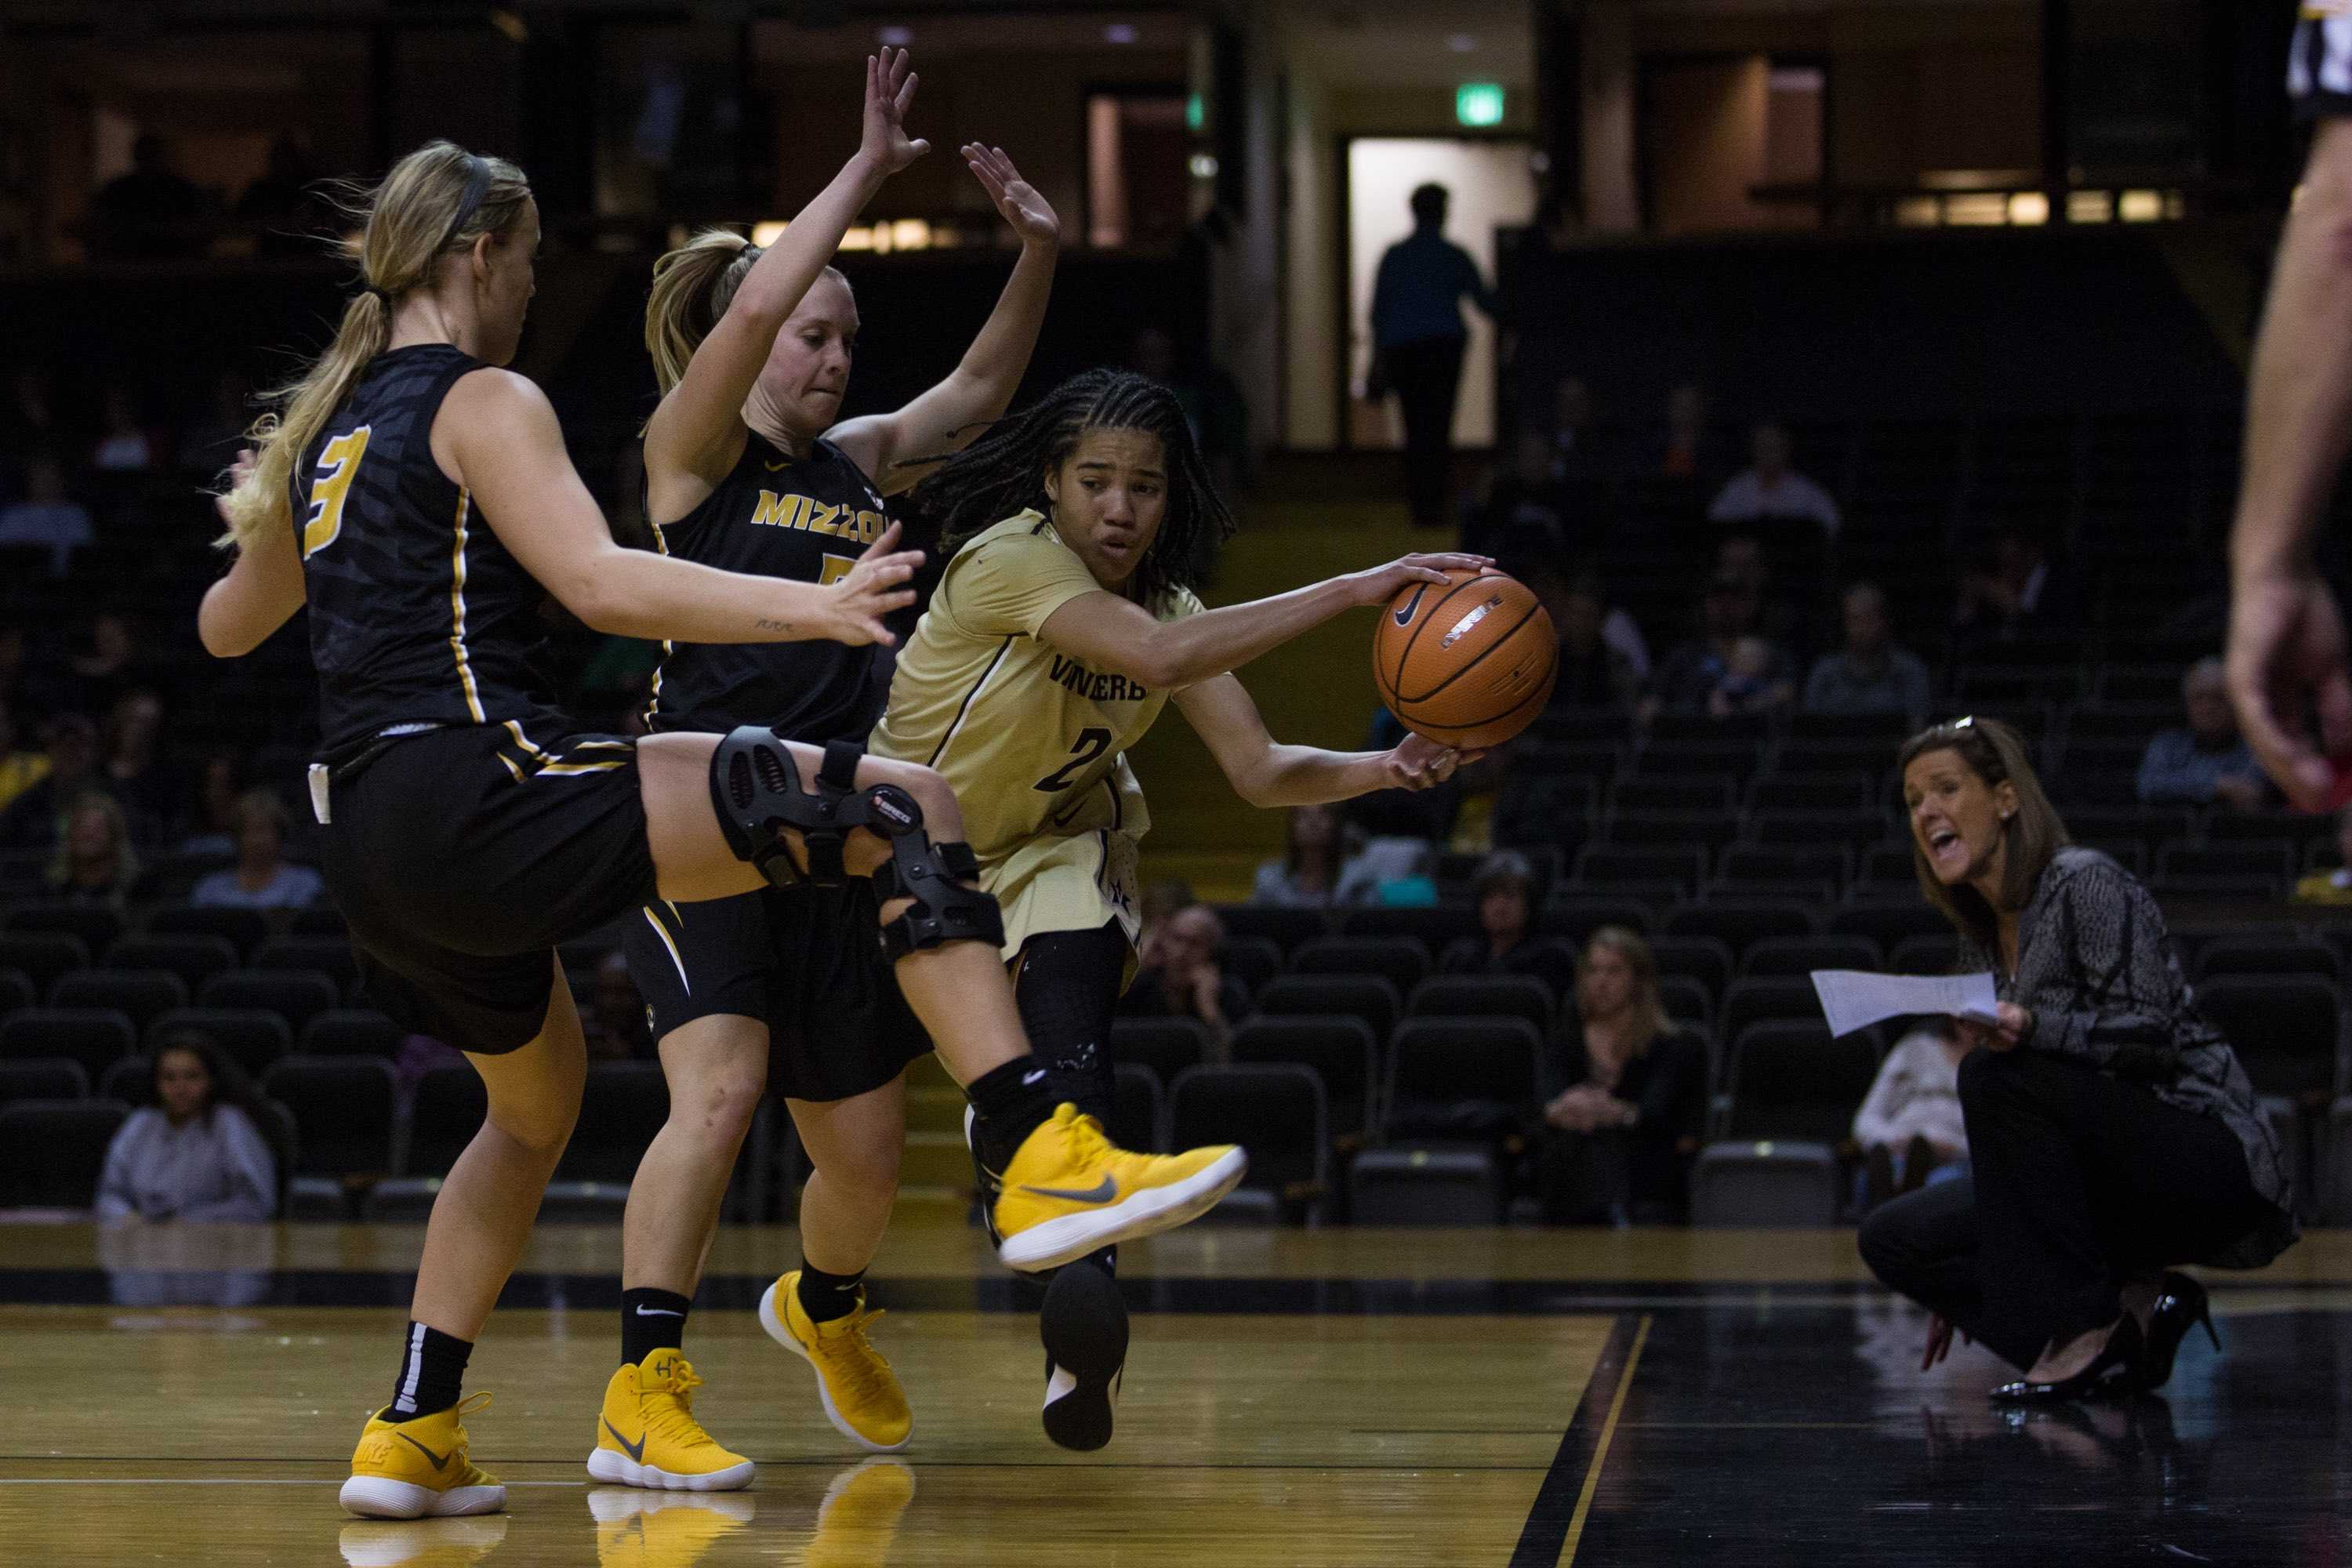 Vanderbilt falls to 0-4 in SEC play with loss to Missouri